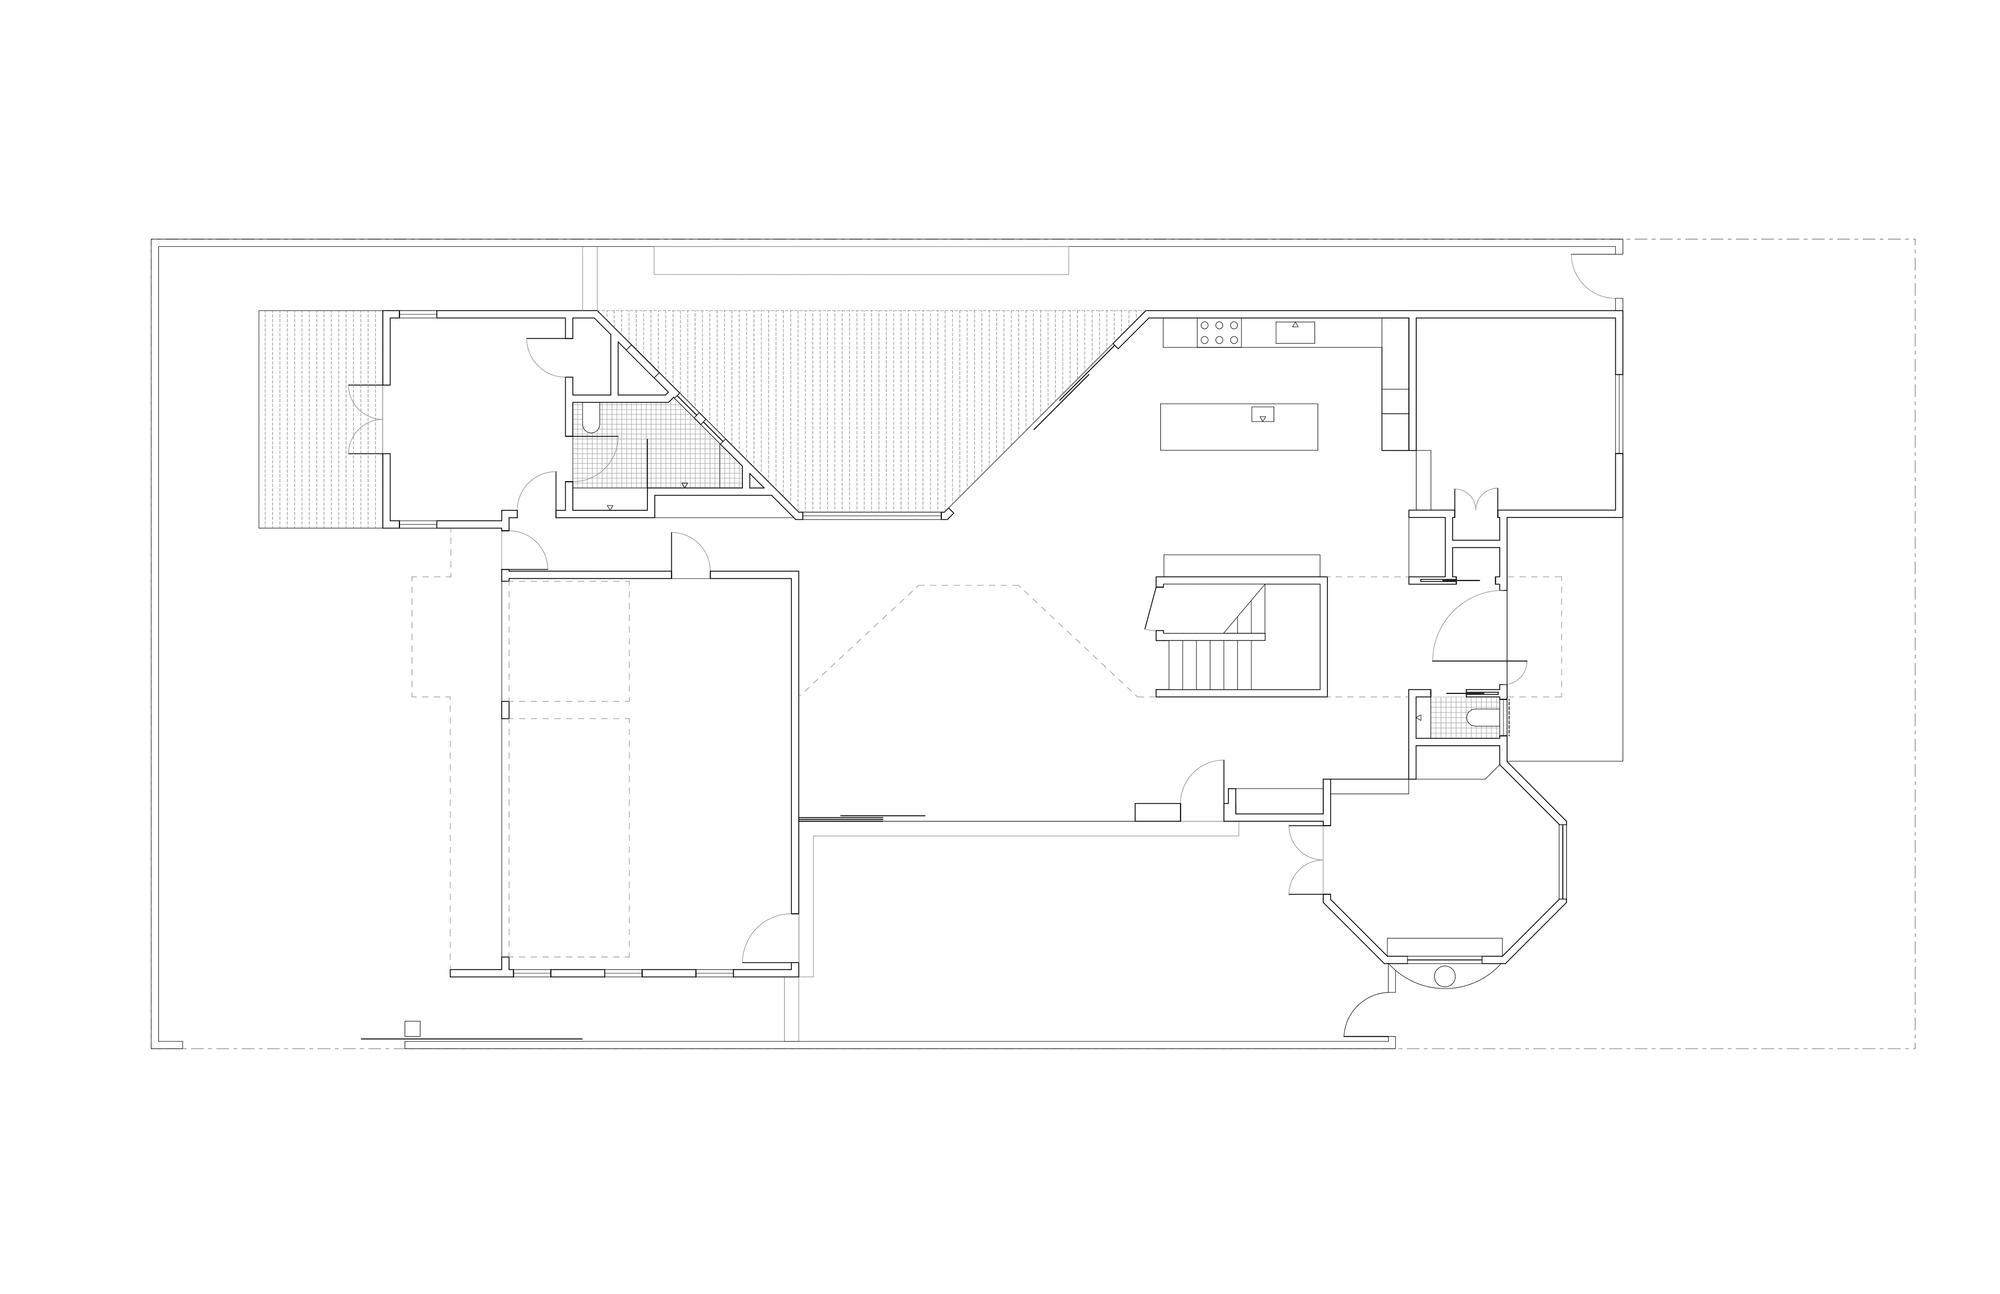 1_1st_floor_plan.jpg